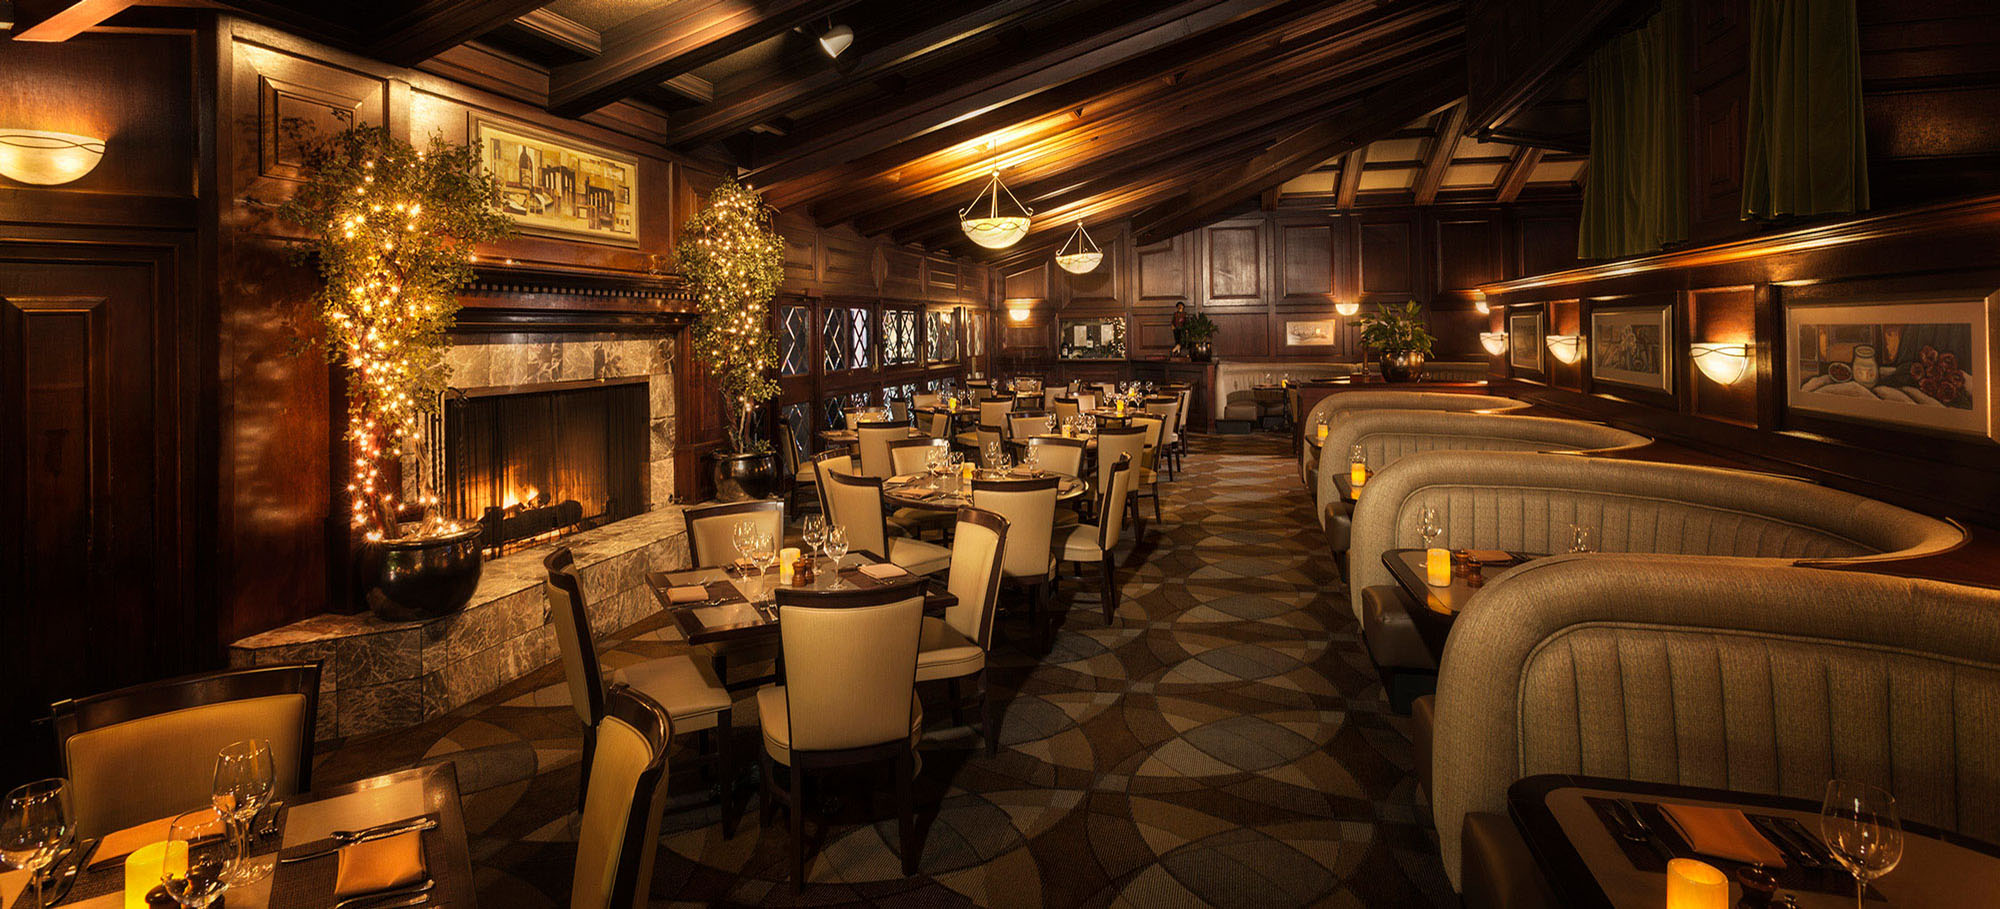 Pointe In Tyme dining room featuring warm lighting, a fireplace, booths and tables